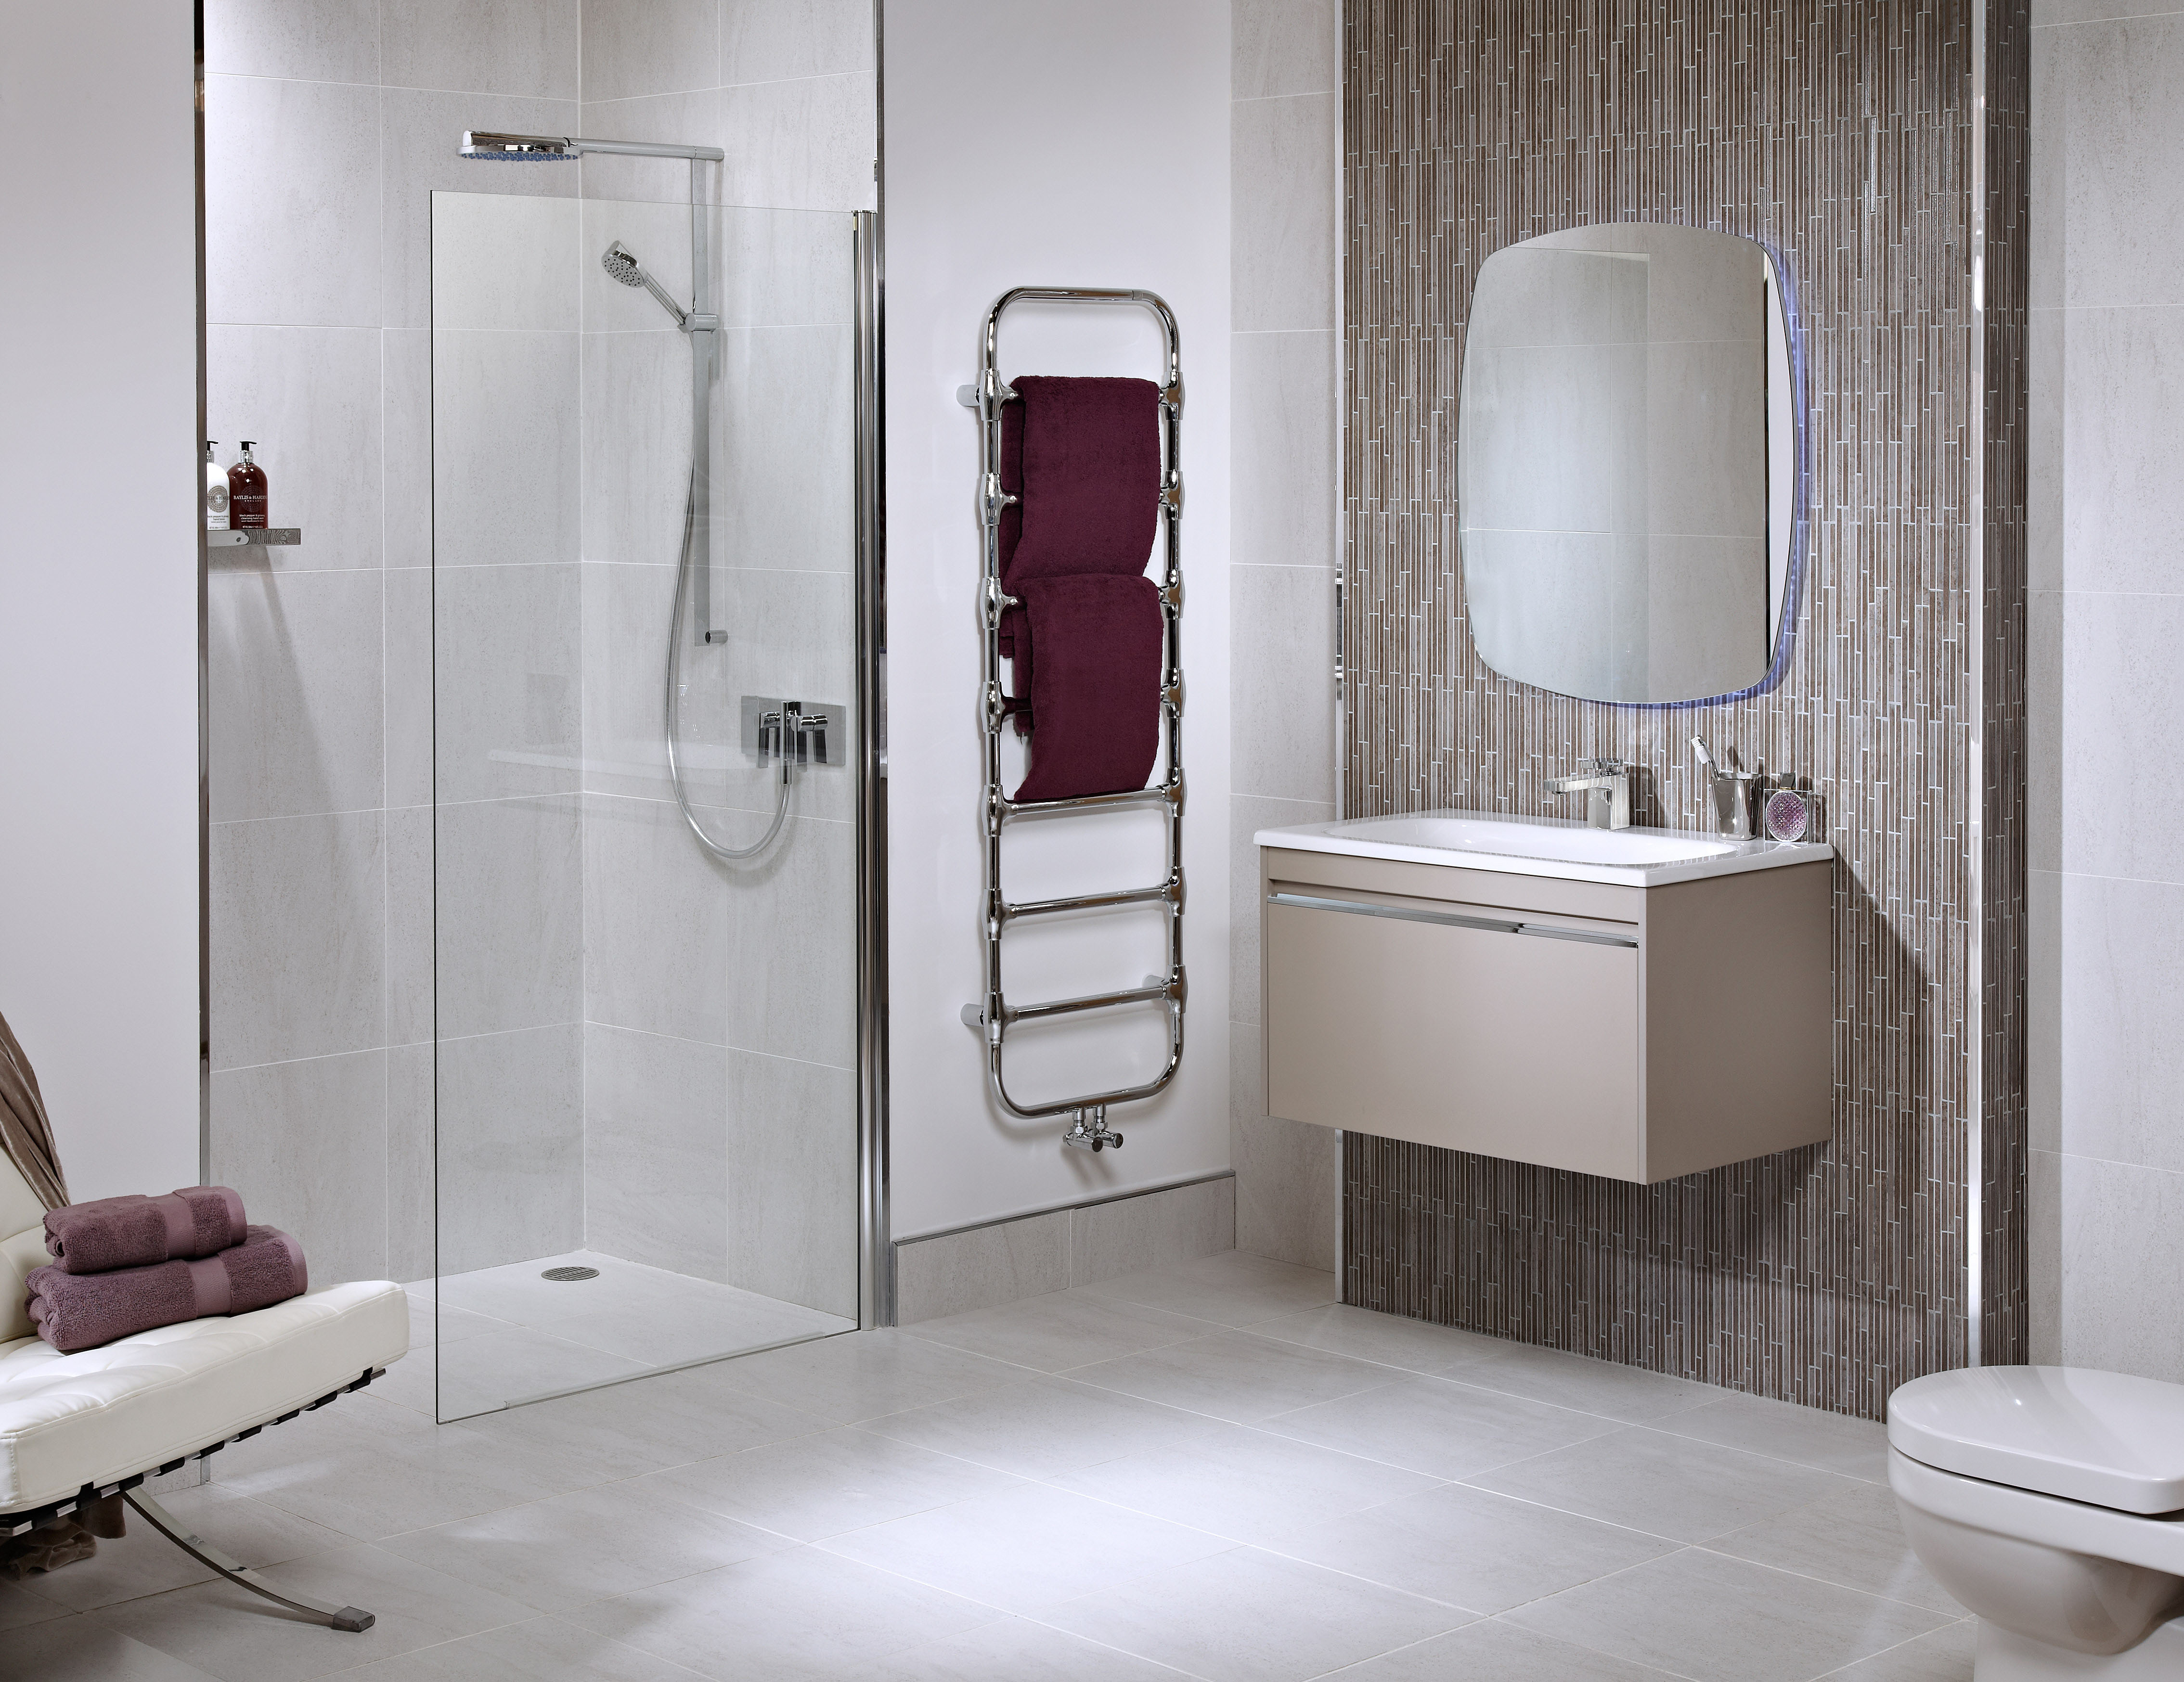 Wet Rooms And Showers Bathroom Design And Supply Fitted Bathrooms Tiles Wet Rooms